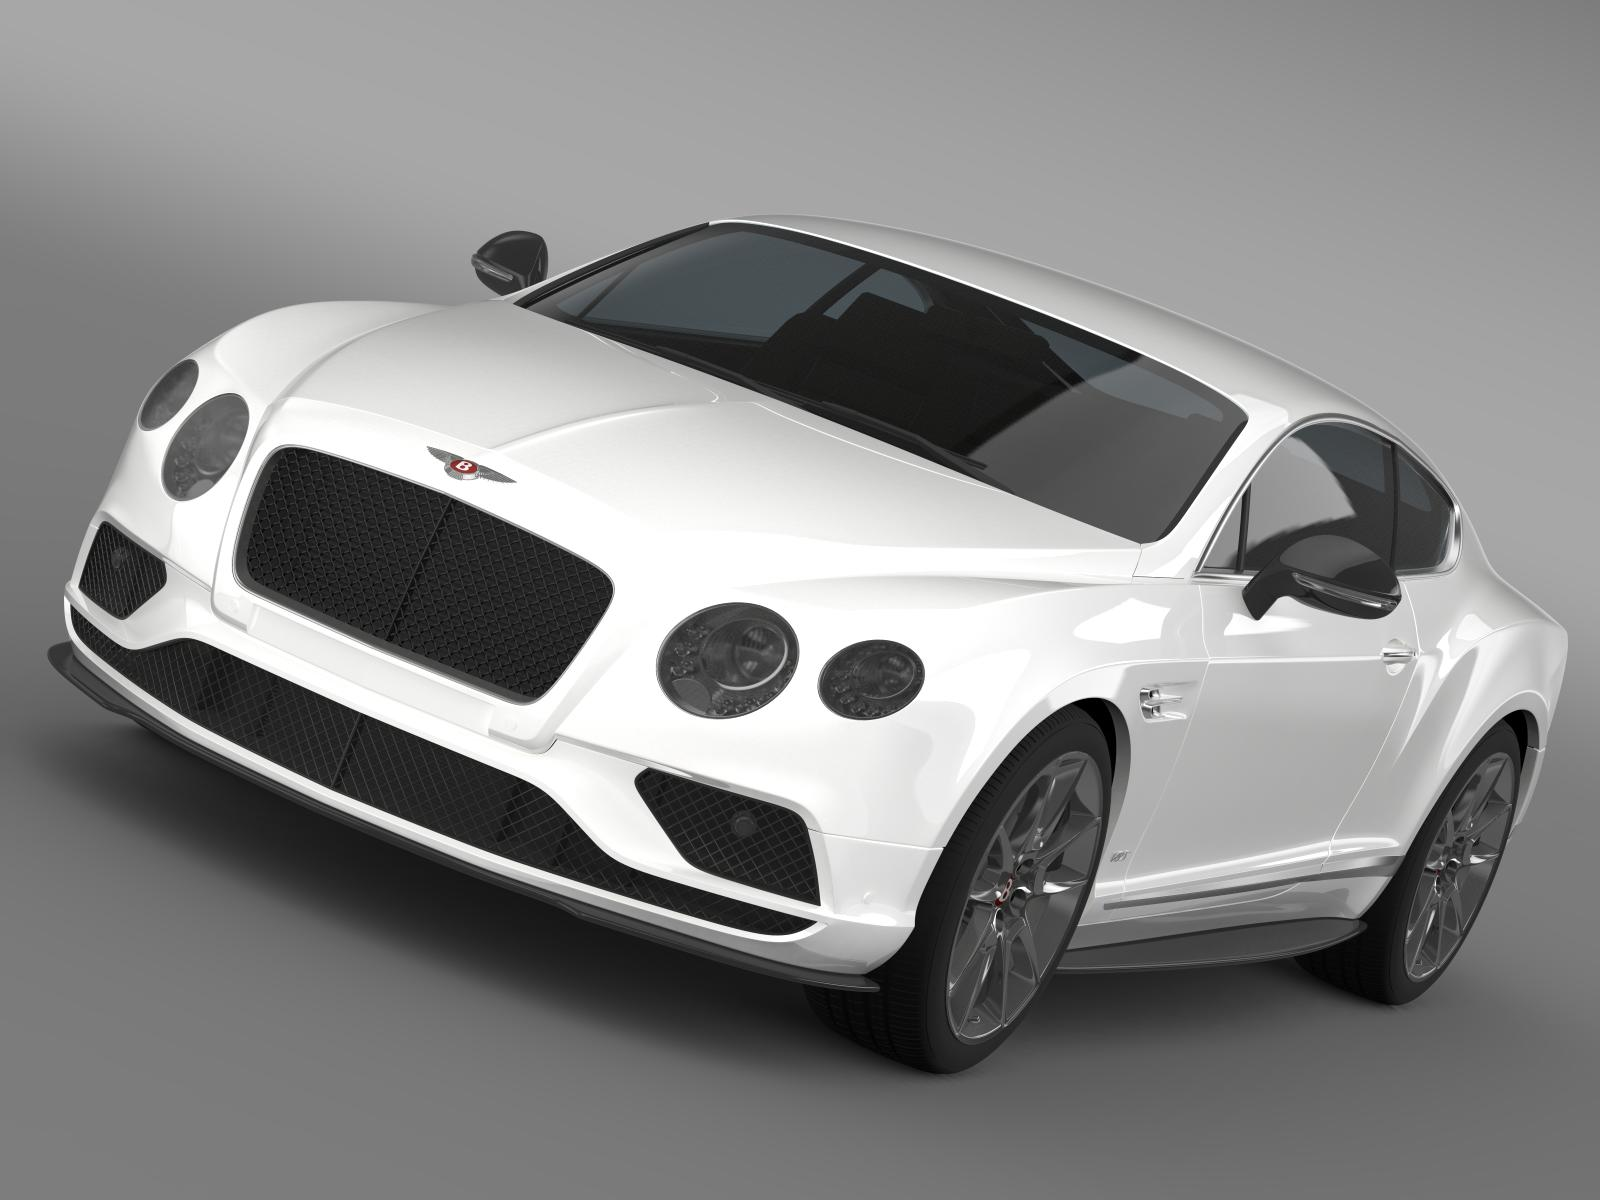 bentley continental gt v8 s 2015 01 3d model 3ds max fbx c4d lwo ma mb hrc xsi obj 207306